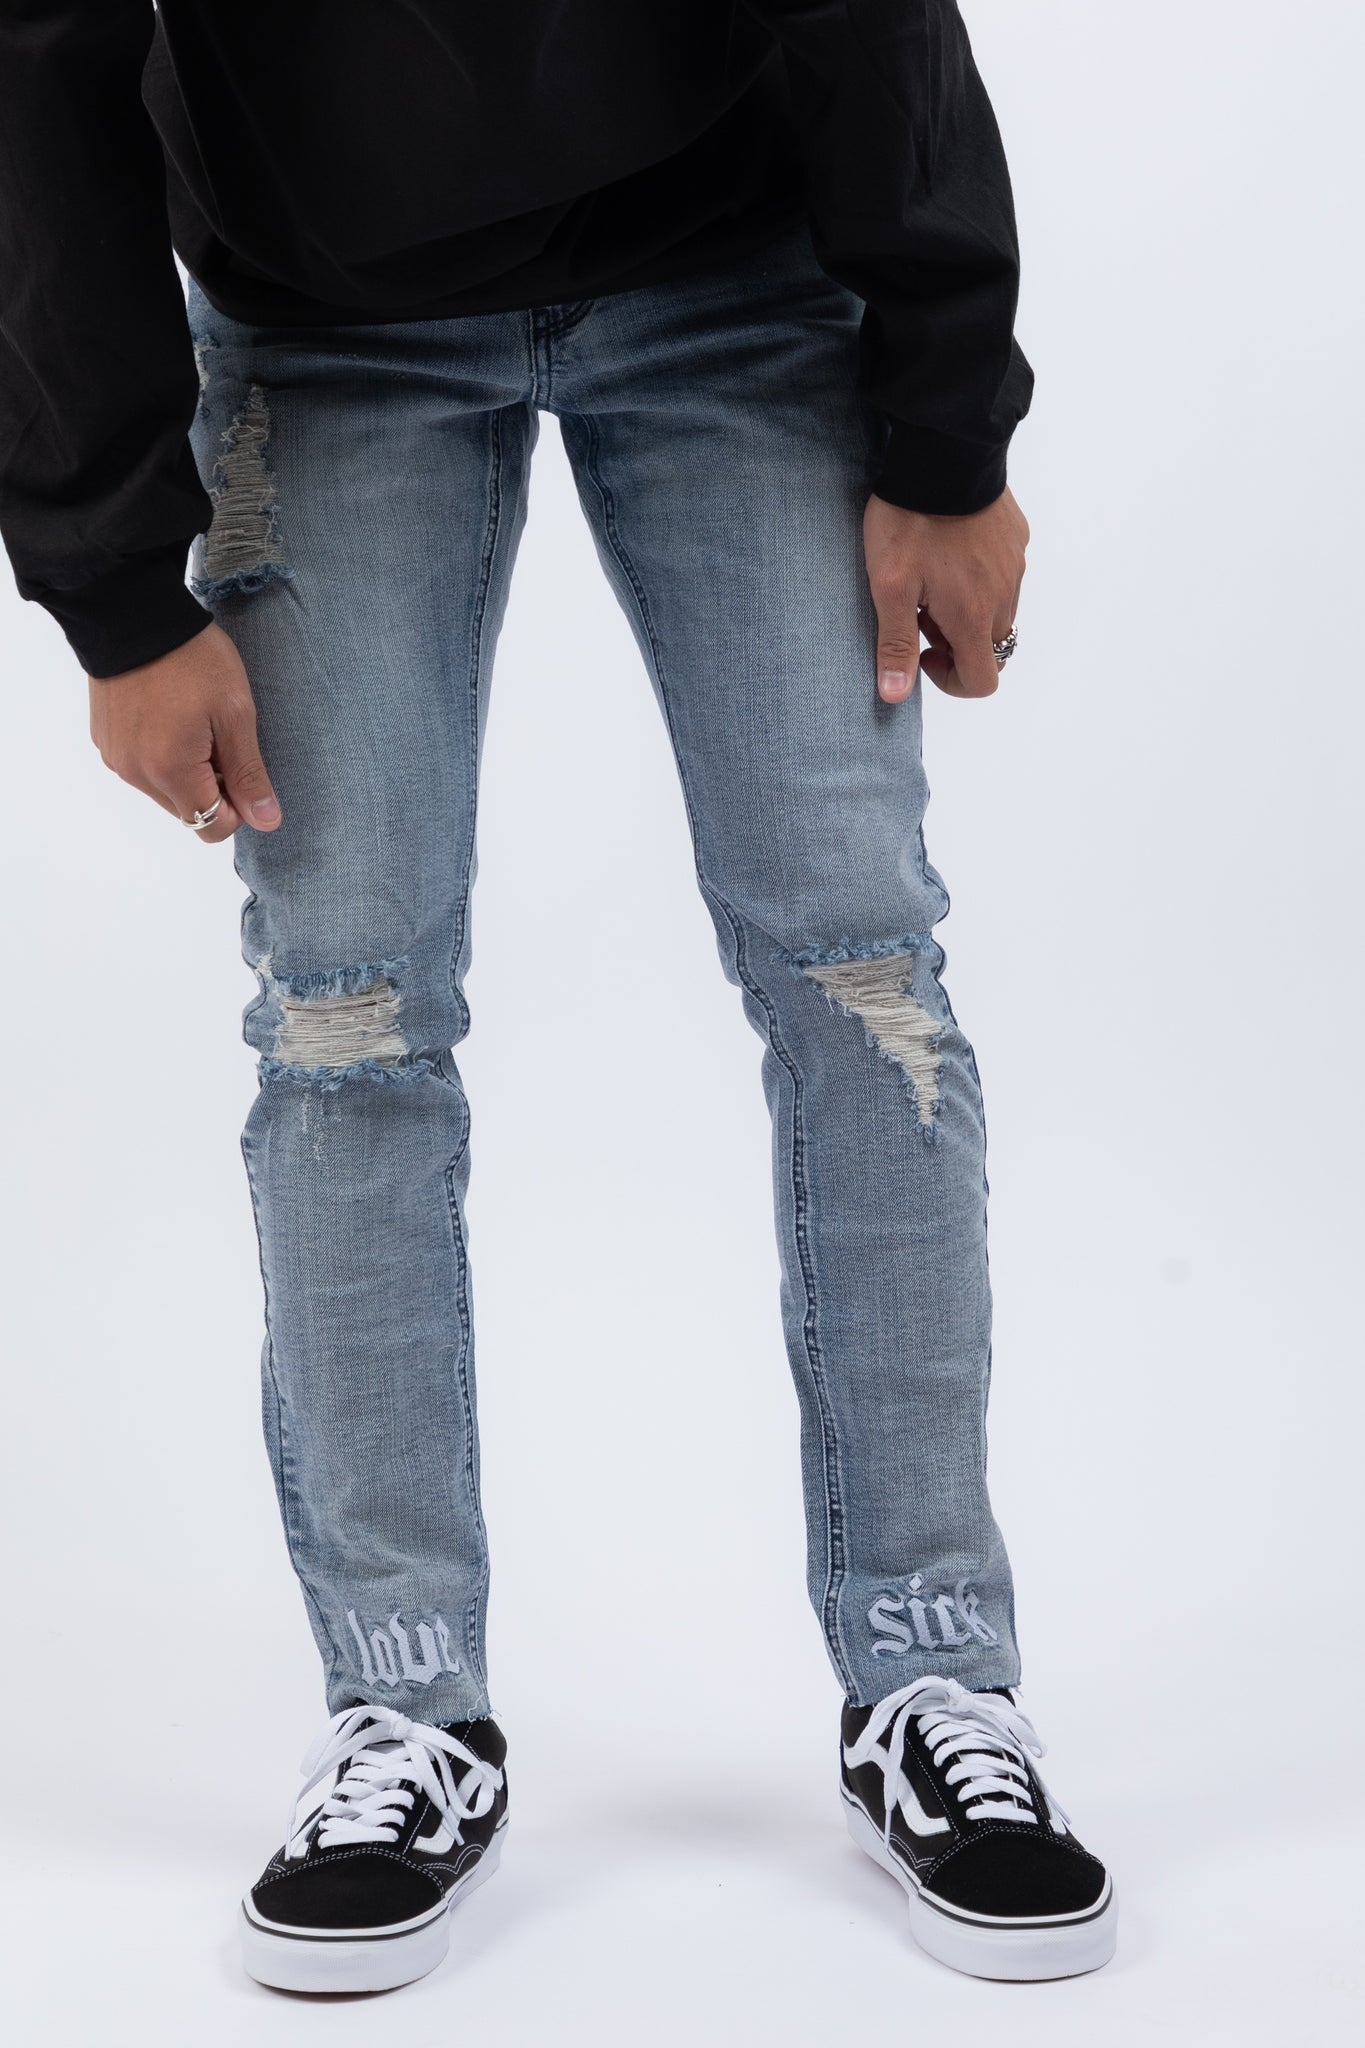 Love Sick Denim Jeans